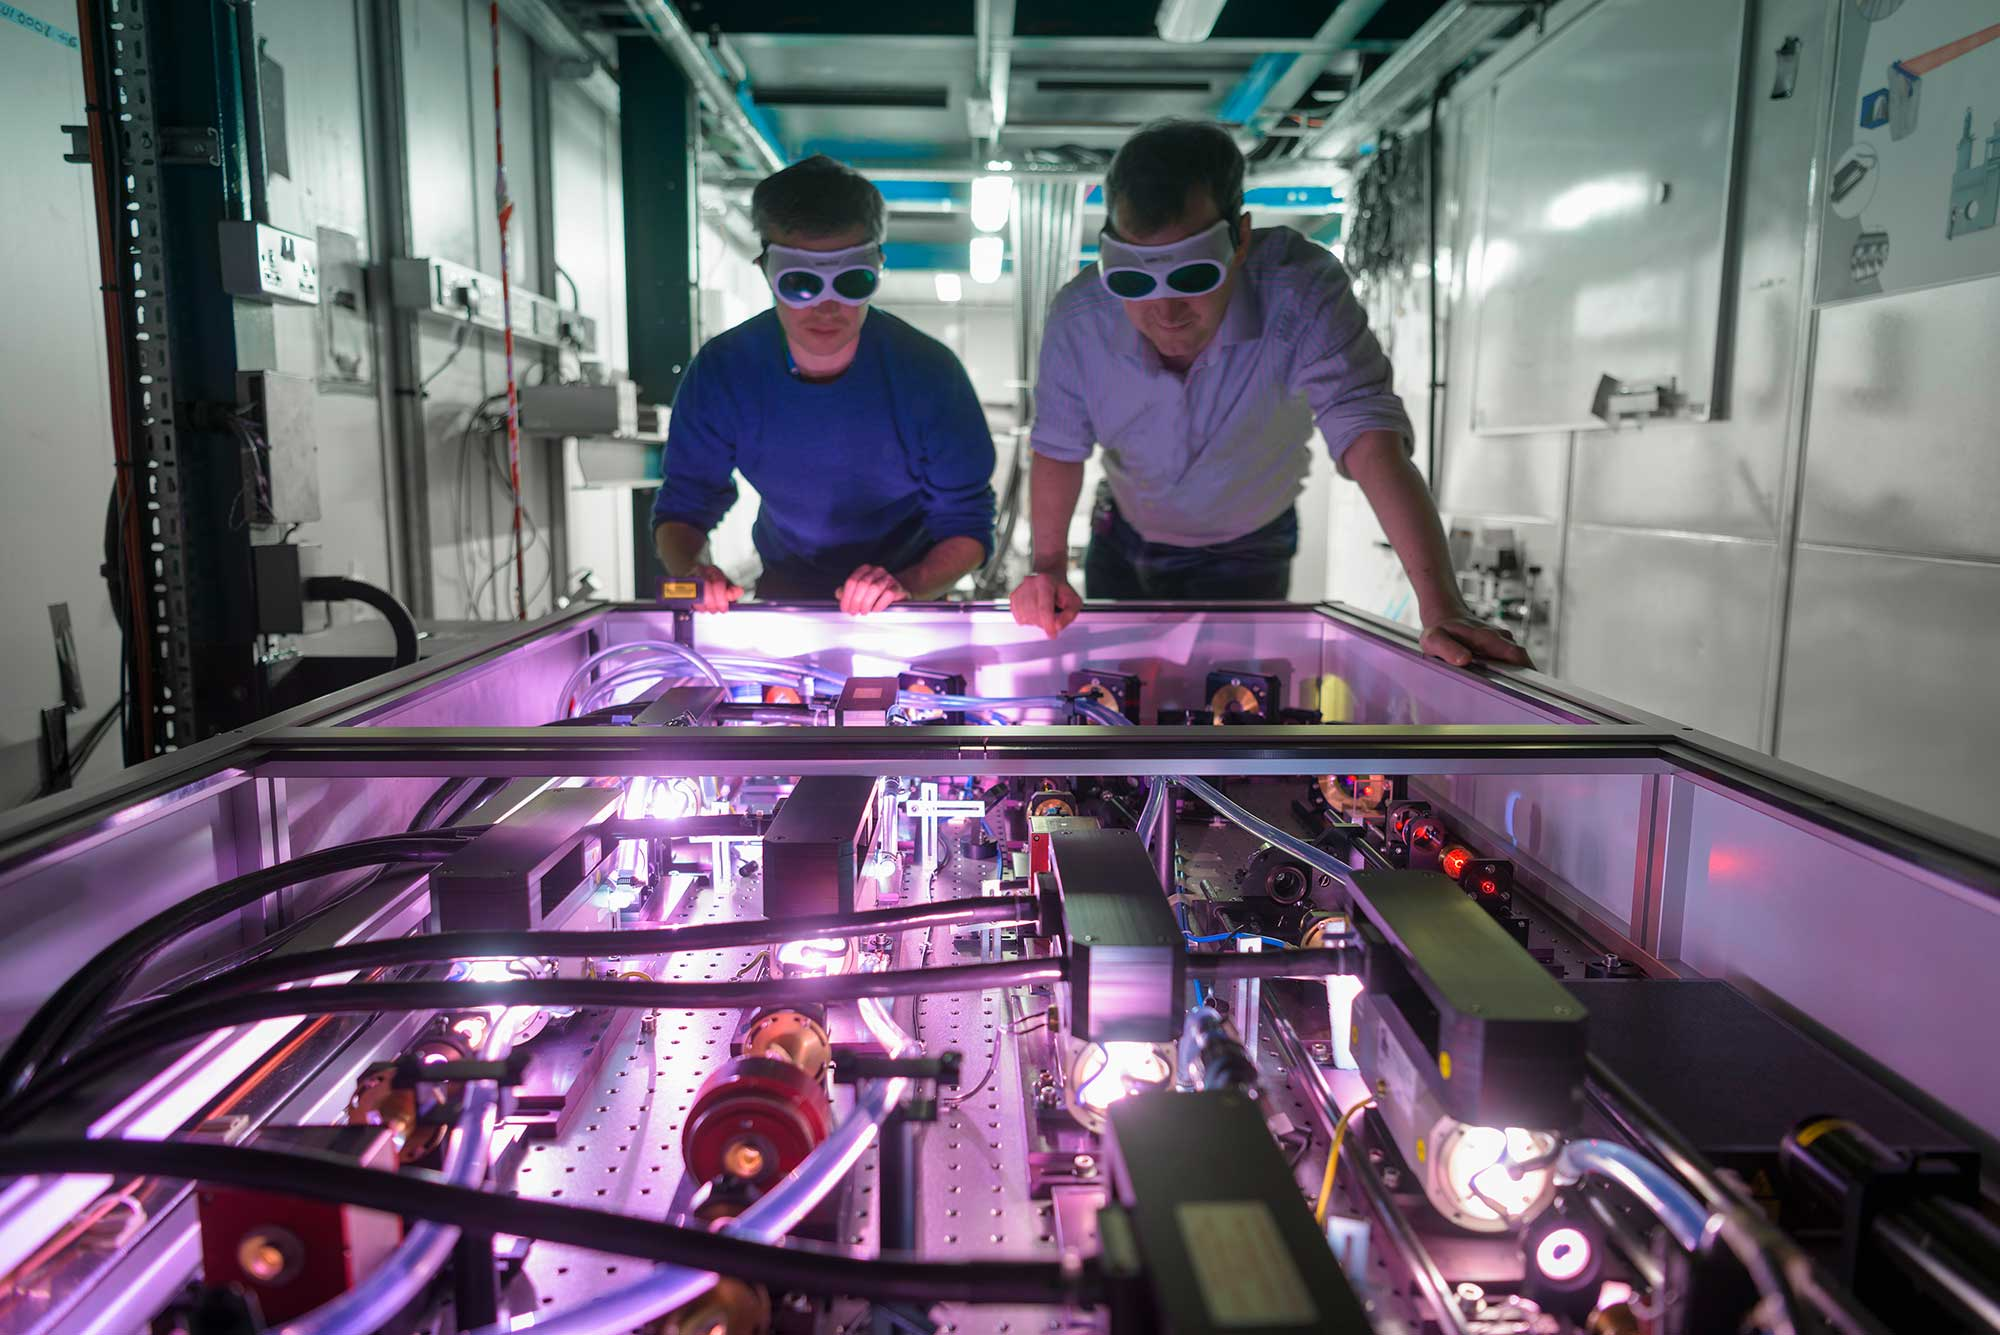 Scientists inspecting laser system